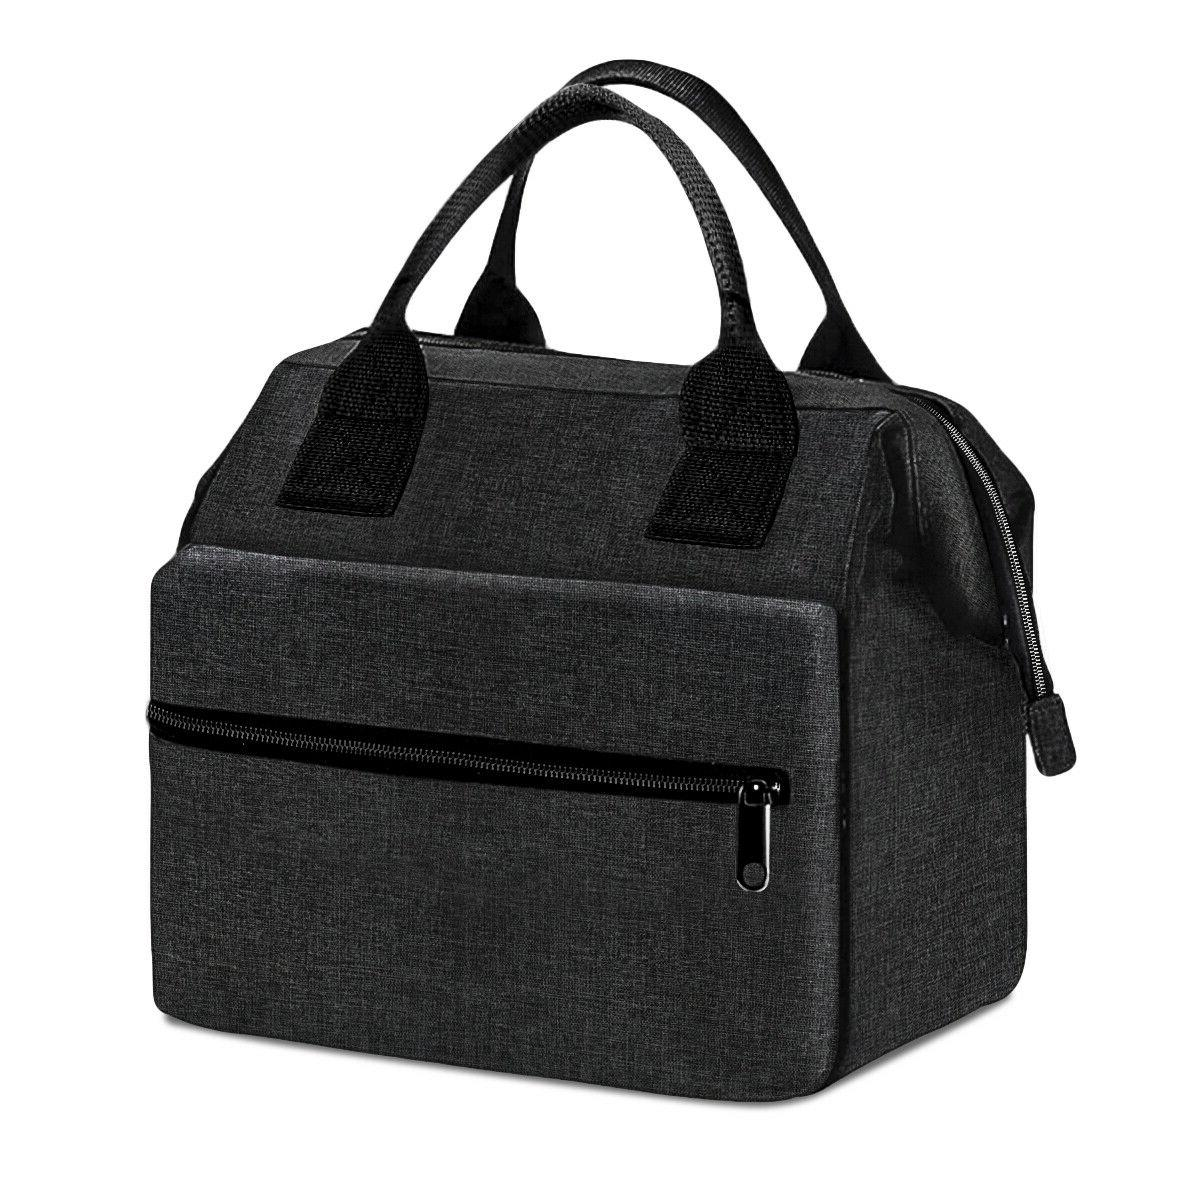 lunch bag insulated leakproof cooler bag